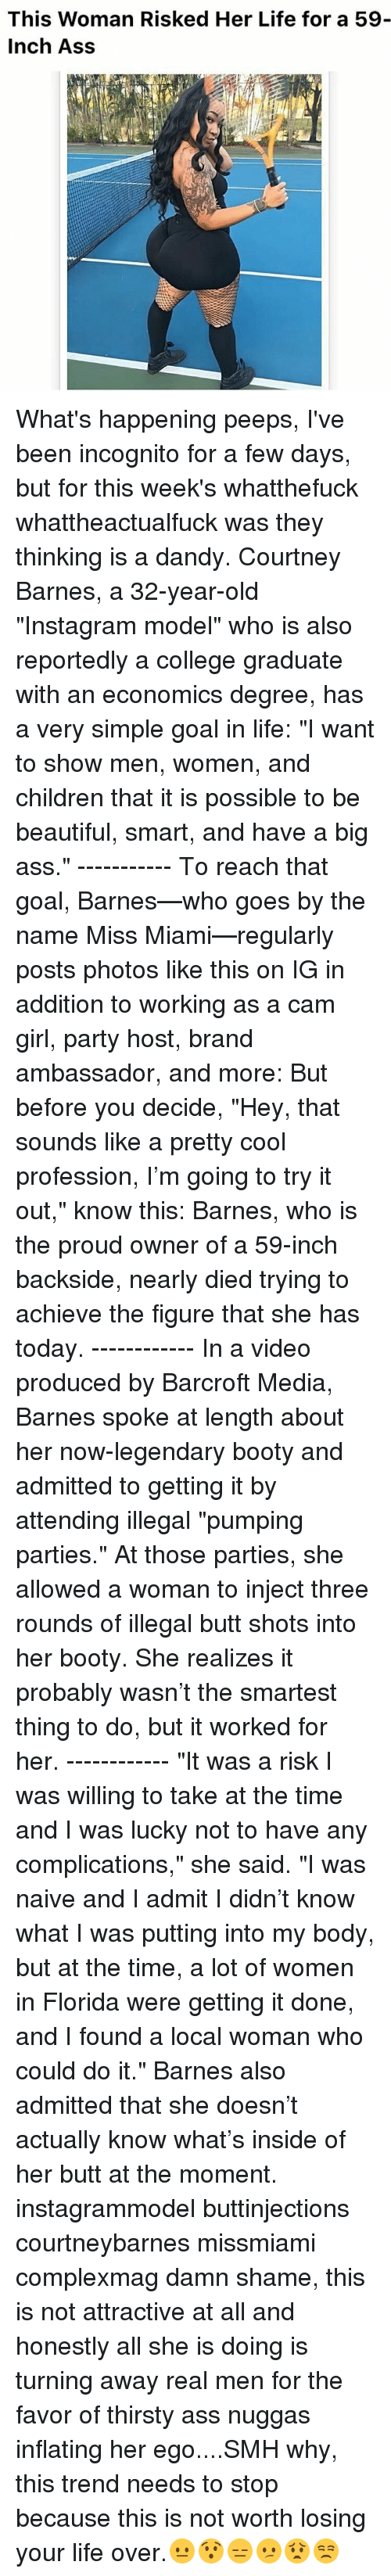 """Memes, Thirsty, and Incognito: This Woman Risked Her Life for a 59  Inch Ass What's happening peeps, I've been incognito for a few days, but for this week's whatthefuck whattheactualfuck was they thinking is a dandy. Courtney Barnes, a 32-year-old """"Instagram model"""" who is also reportedly a college graduate with an economics degree, has a very simple goal in life: """"I want to show men, women, and children that it is possible to be beautiful, smart, and have a big ass."""" ----------- To reach that goal, Barnes—who goes by the name Miss Miami—regularly posts photos like this on IG in addition to working as a cam girl, party host, brand ambassador, and more: But before you decide, """"Hey, that sounds like a pretty cool profession, I'm going to try it out,"""" know this: Barnes, who is the proud owner of a 59-inch backside, nearly died trying to achieve the figure that she has today. ------------ In a video produced by Barcroft Media, Barnes spoke at length about her now-legendary booty and admitted to getting it by attending illegal """"pumping parties."""" At those parties, she allowed a woman to inject three rounds of illegal butt shots into her booty. She realizes it probably wasn't the smartest thing to do, but it worked for her. ------------ """"It was a risk I was willing to take at the time and I was lucky not to have any complications,"""" she said. """"I was naive and I admit I didn't know what I was putting into my body, but at the time, a lot of women in Florida were getting it done, and I found a local woman who could do it."""" Barnes also admitted that she doesn't actually know what's inside of her butt at the moment. instagrammodel buttinjections courtneybarnes missmiami complexmag damn shame, this is not attractive at all and honestly all she is doing is turning away real men for the favor of thirsty ass nuggas inflating her ego....SMH why, this trend needs to stop because this is not worth losing your life over.😐😯😑😕😟😒"""